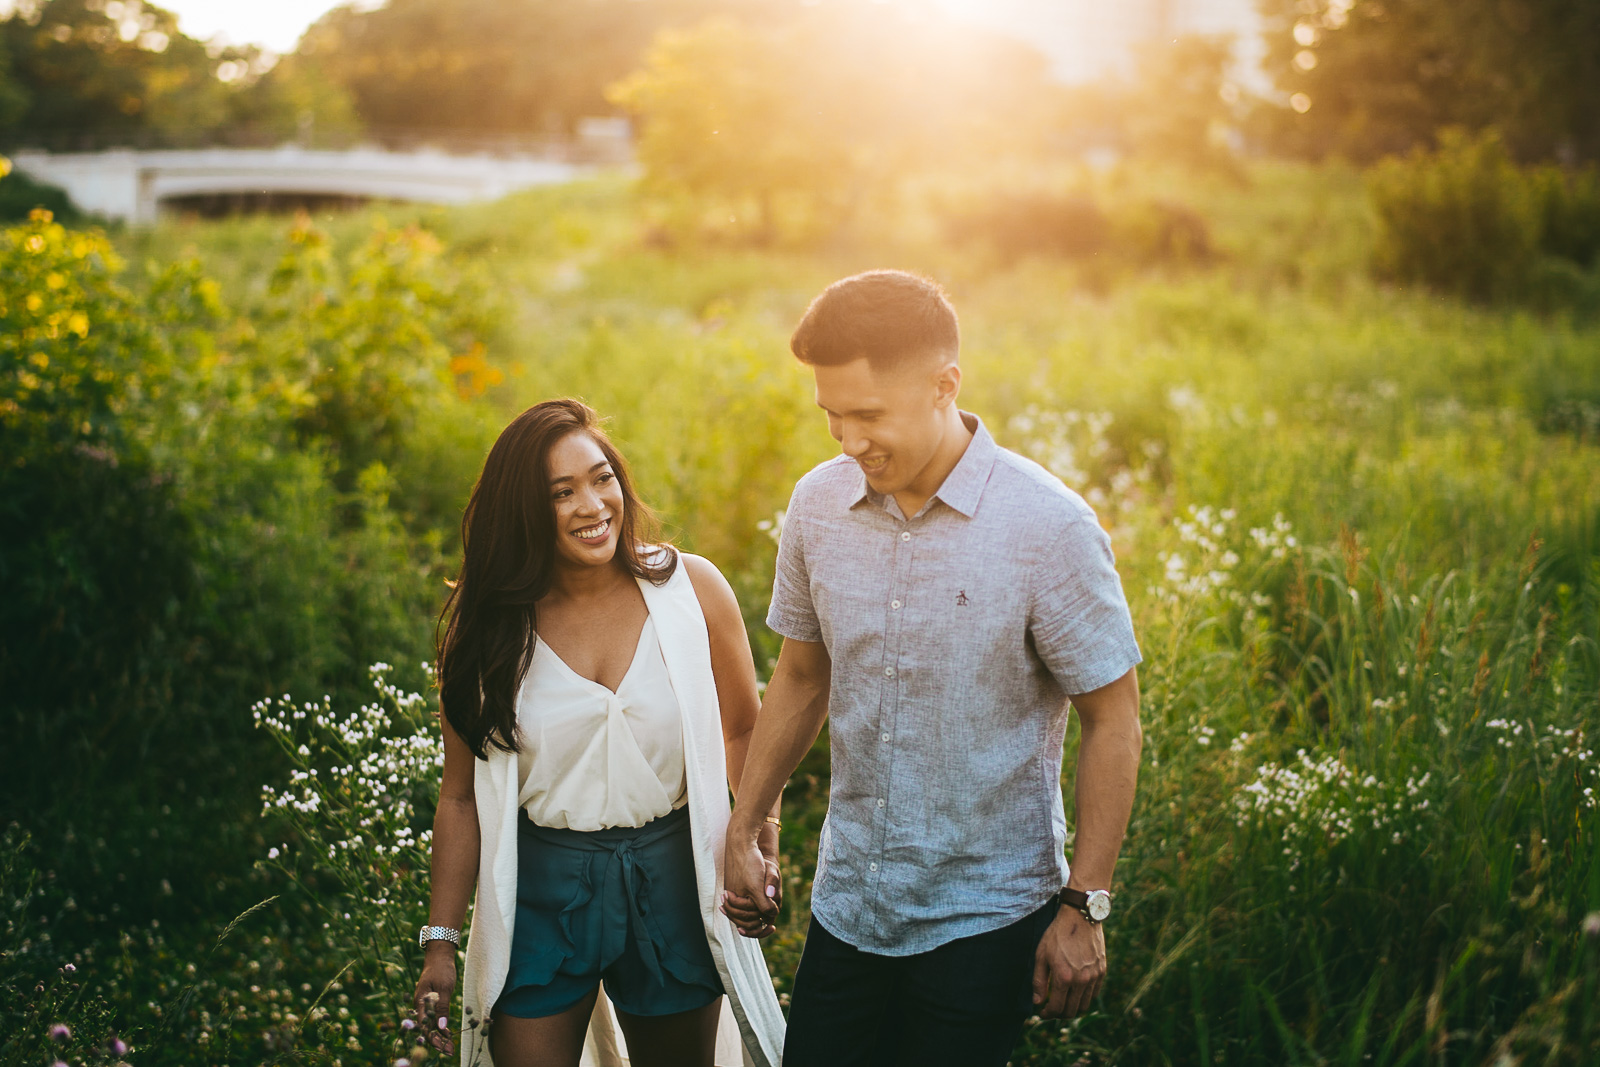 15 sunet engagement session - Sunset Engagement Photos // Francine + RJ